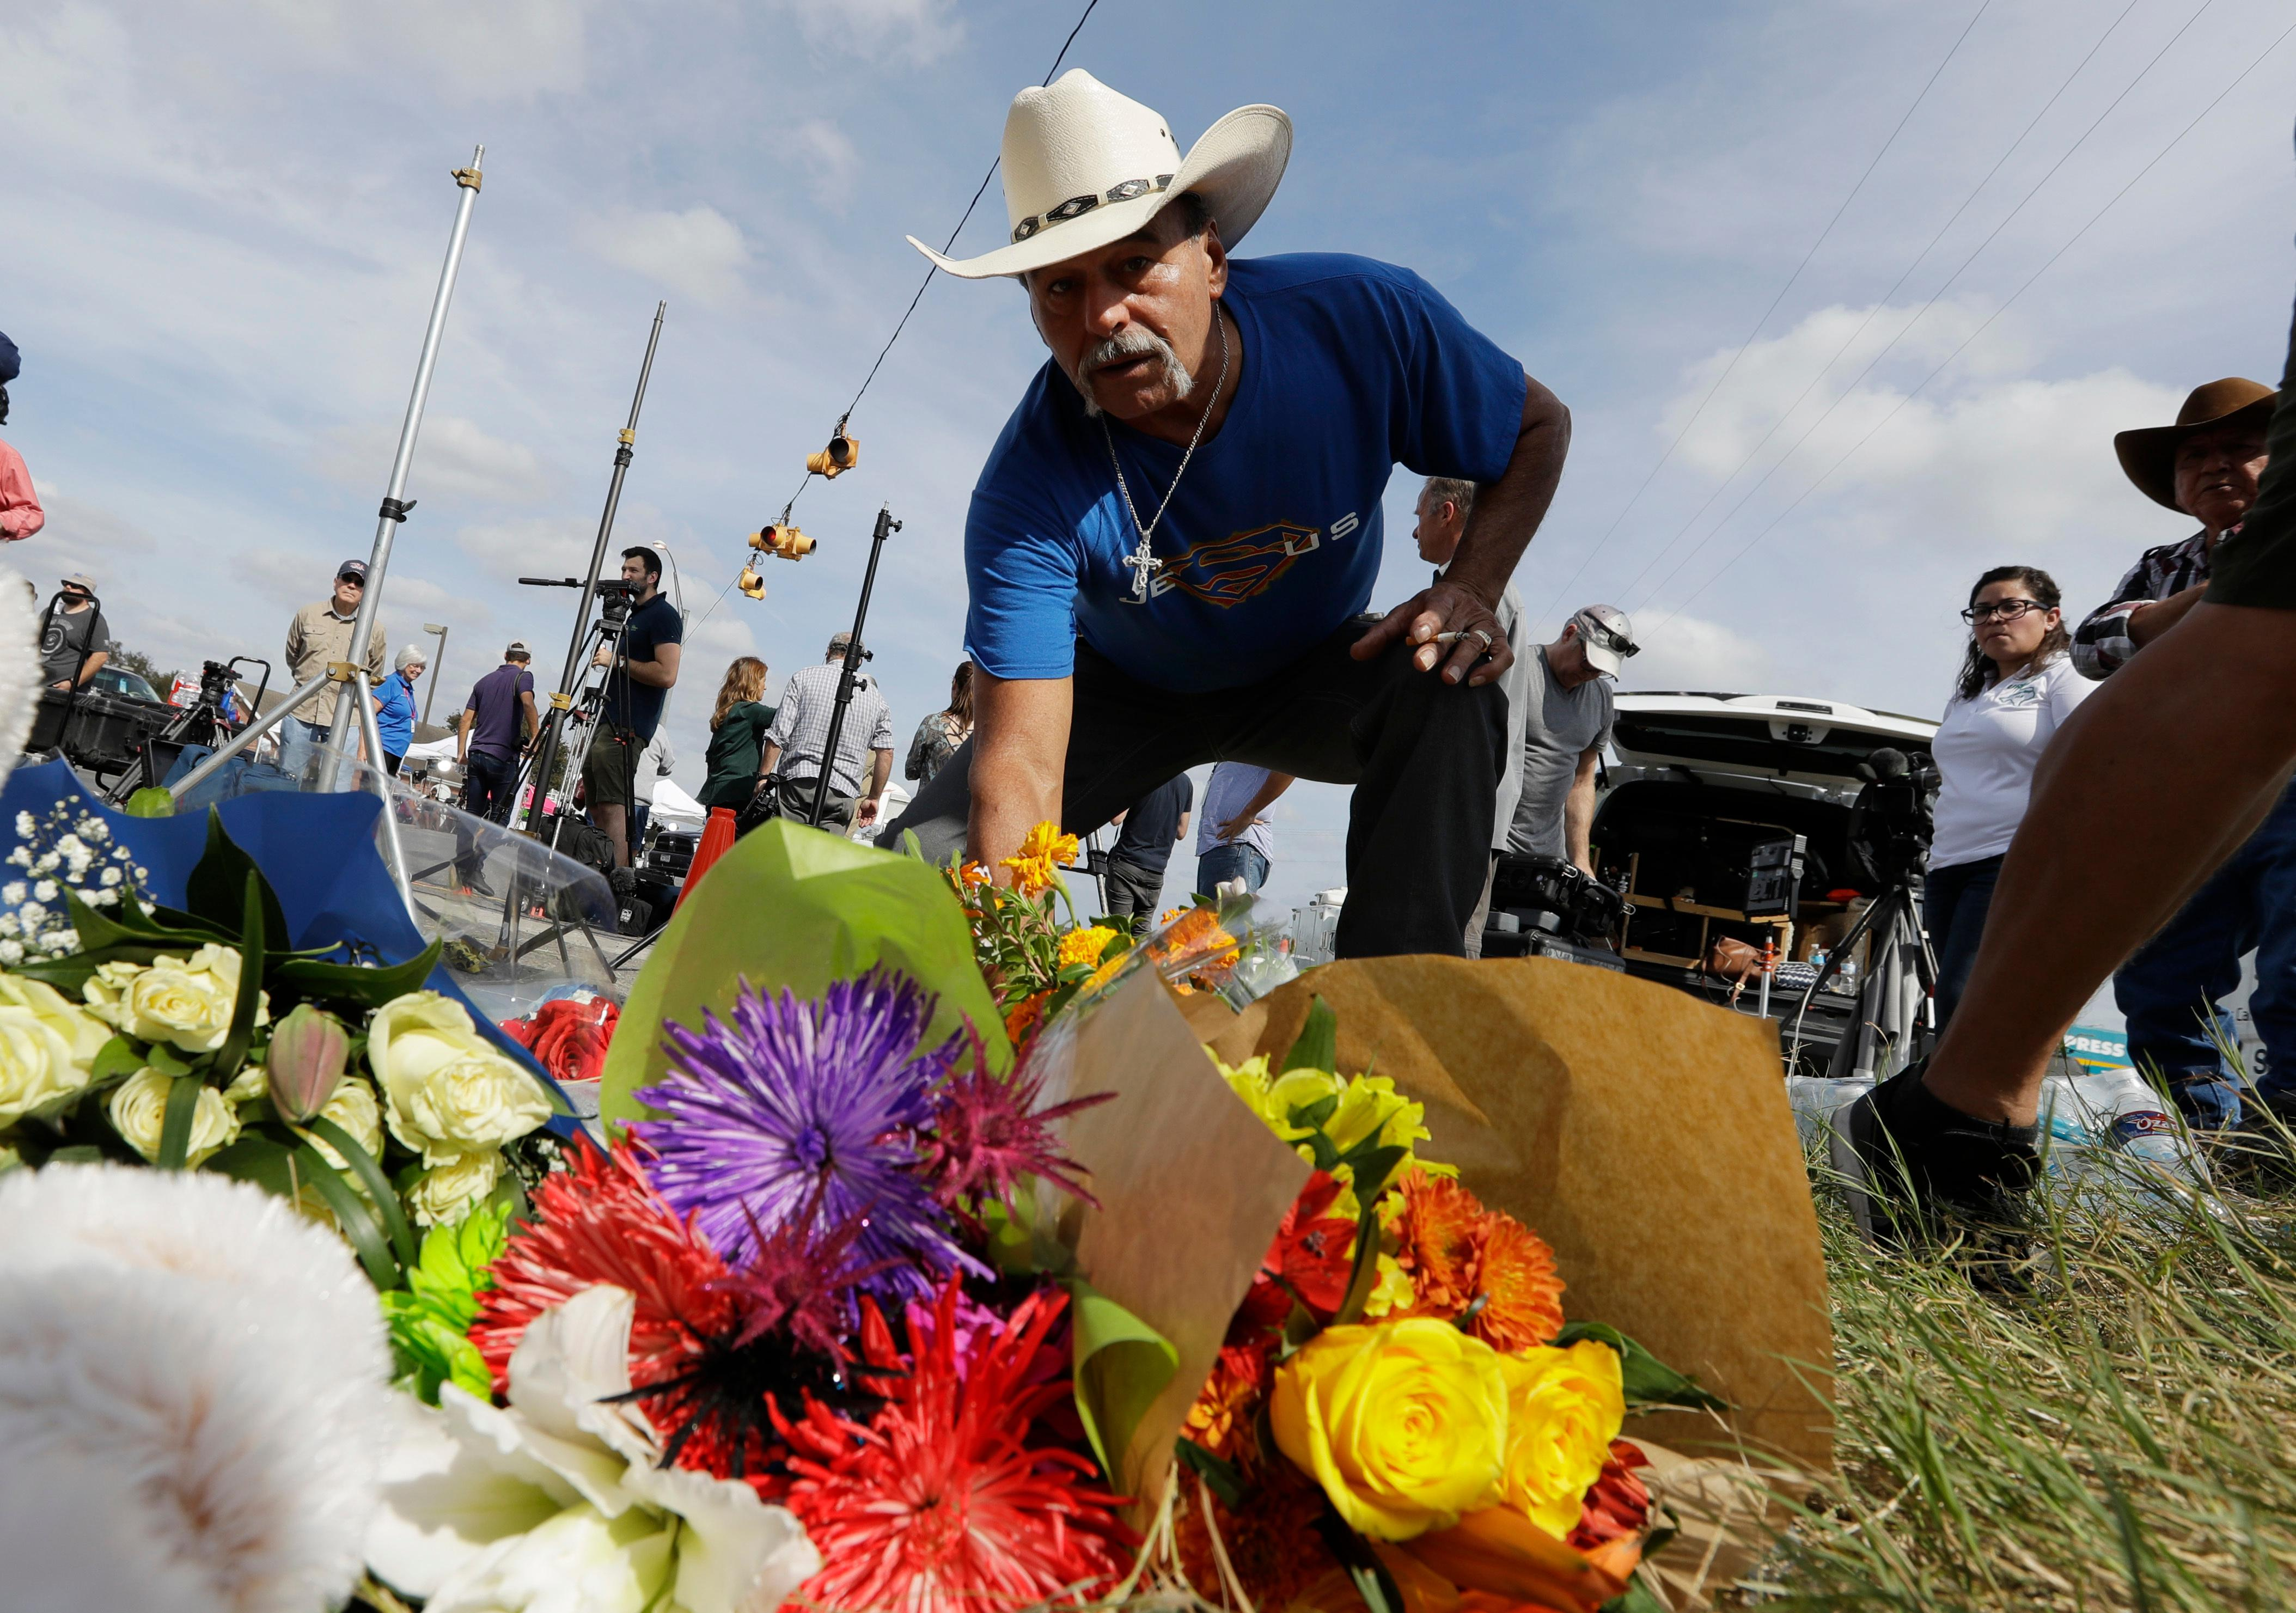 Rene Moreno drops off flowers at a makeshift memorial at the scene of a shooting at the First Baptist Church of Sutherland Springs, Tuesday, Nov. 7, 2017, in Sutherland Springs, Texas. A man opened fire inside the church in the small South Texas community on Sunday, killing more than two dozen and injuring others. (AP Photo/Eric Gay)